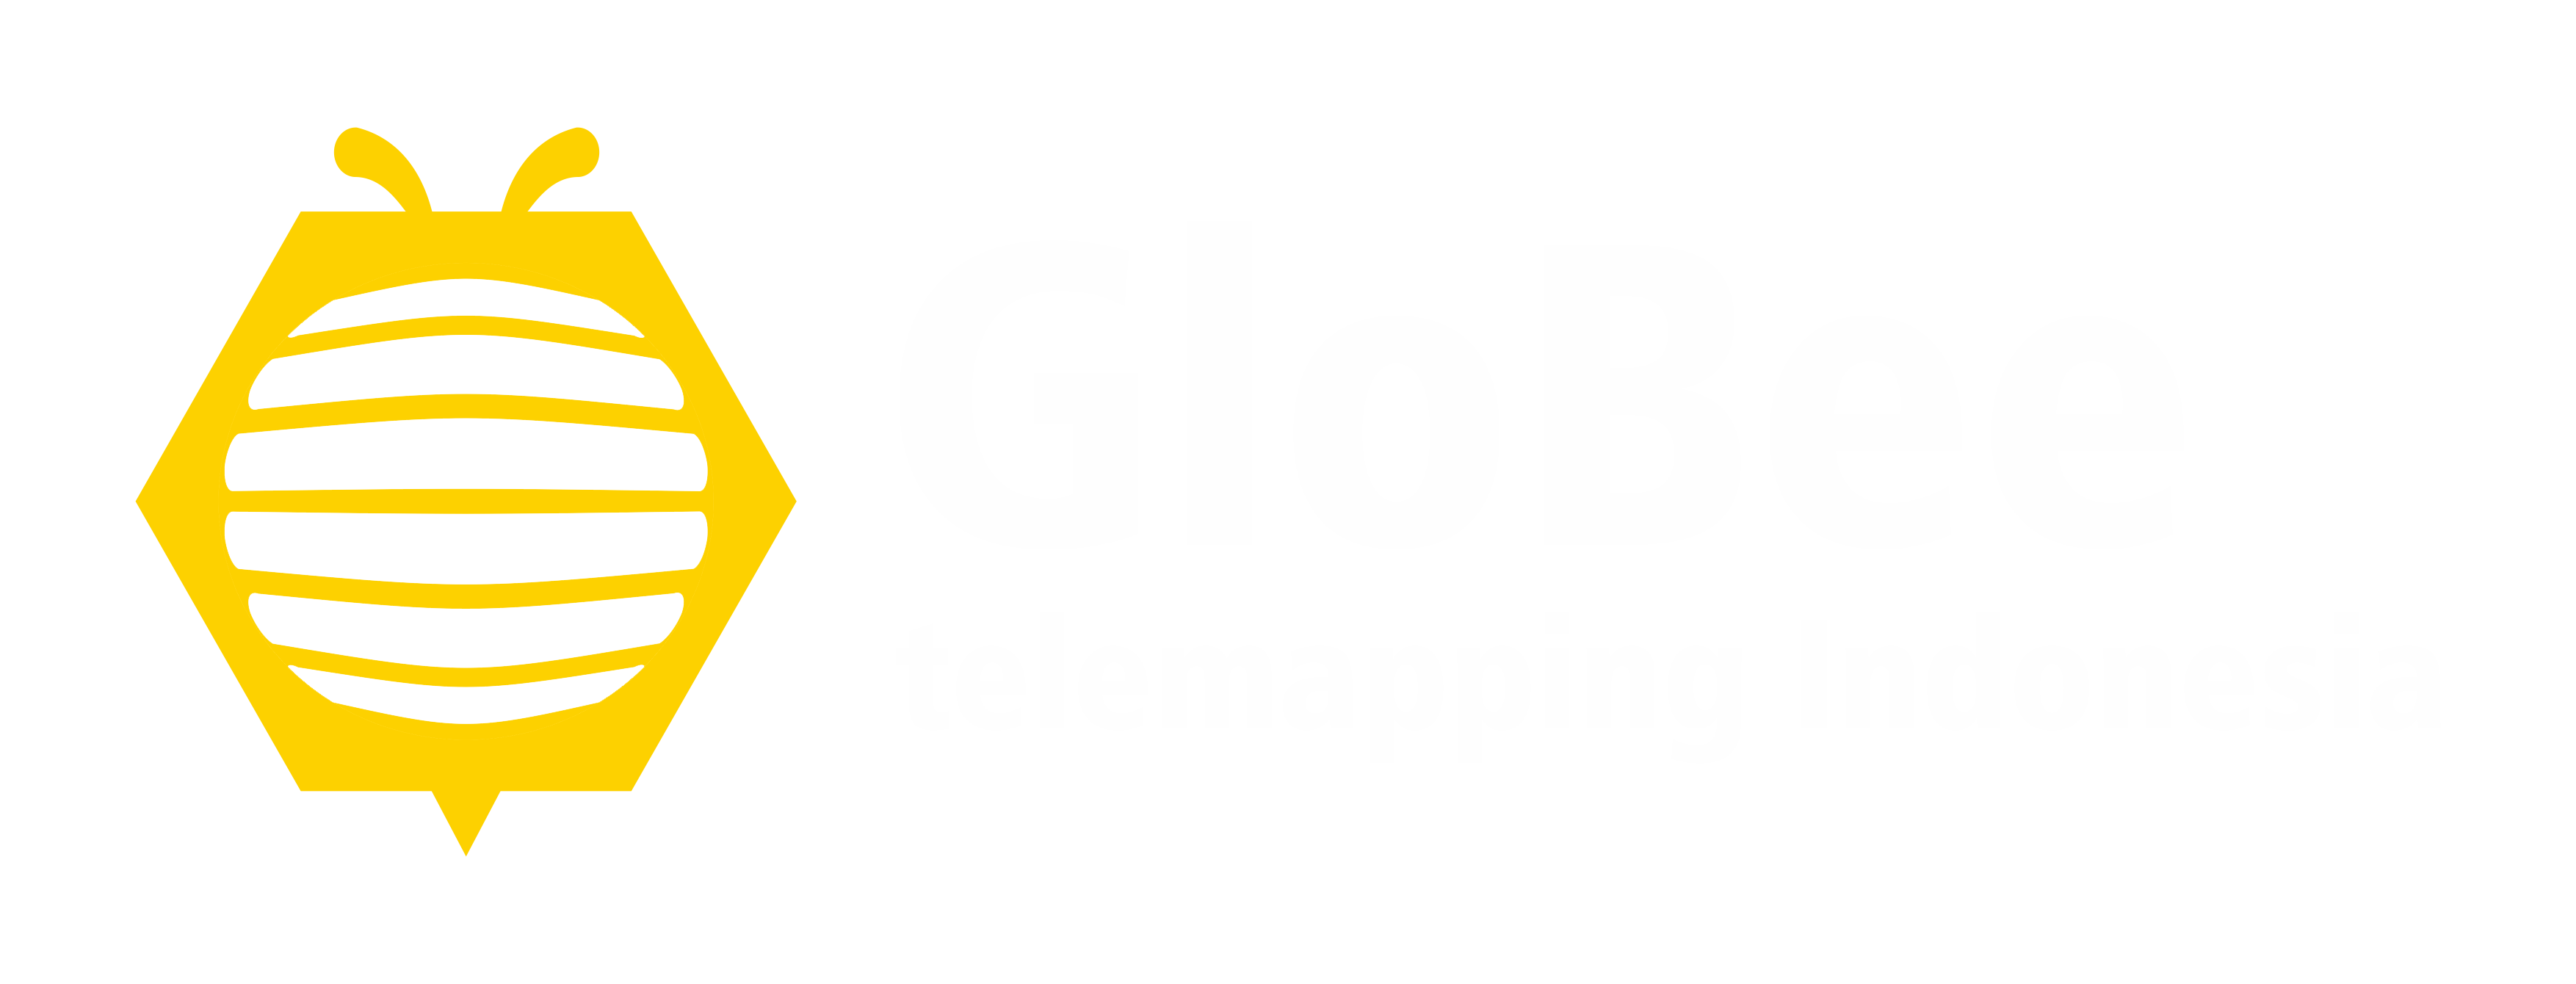 Globee Telemapping